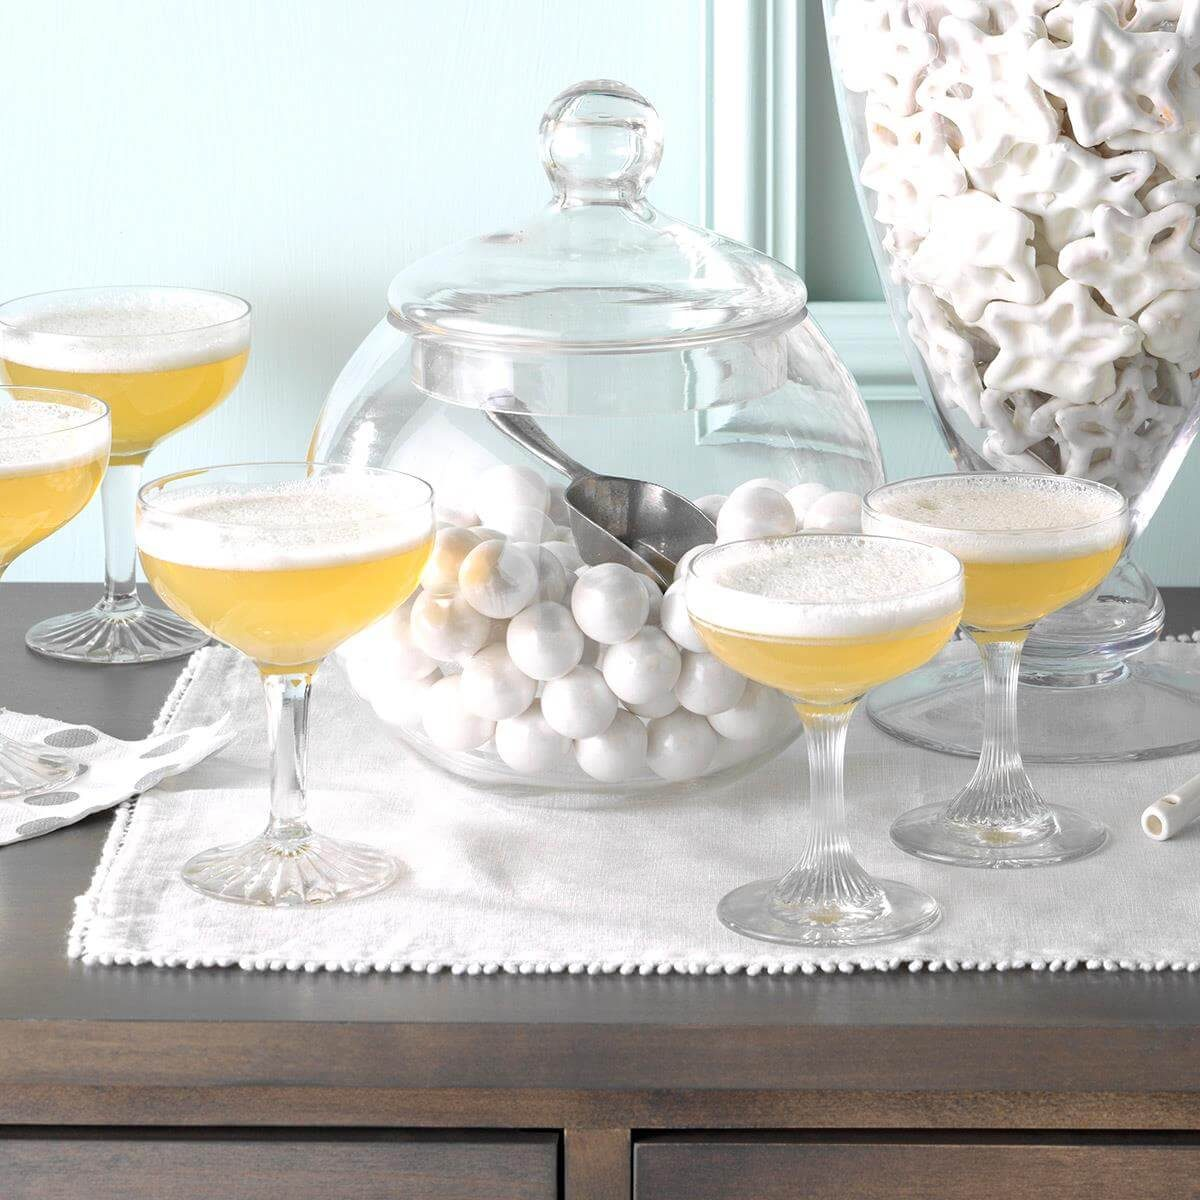 Champagne glasses with Jellied Champagne Dessert on a side table.